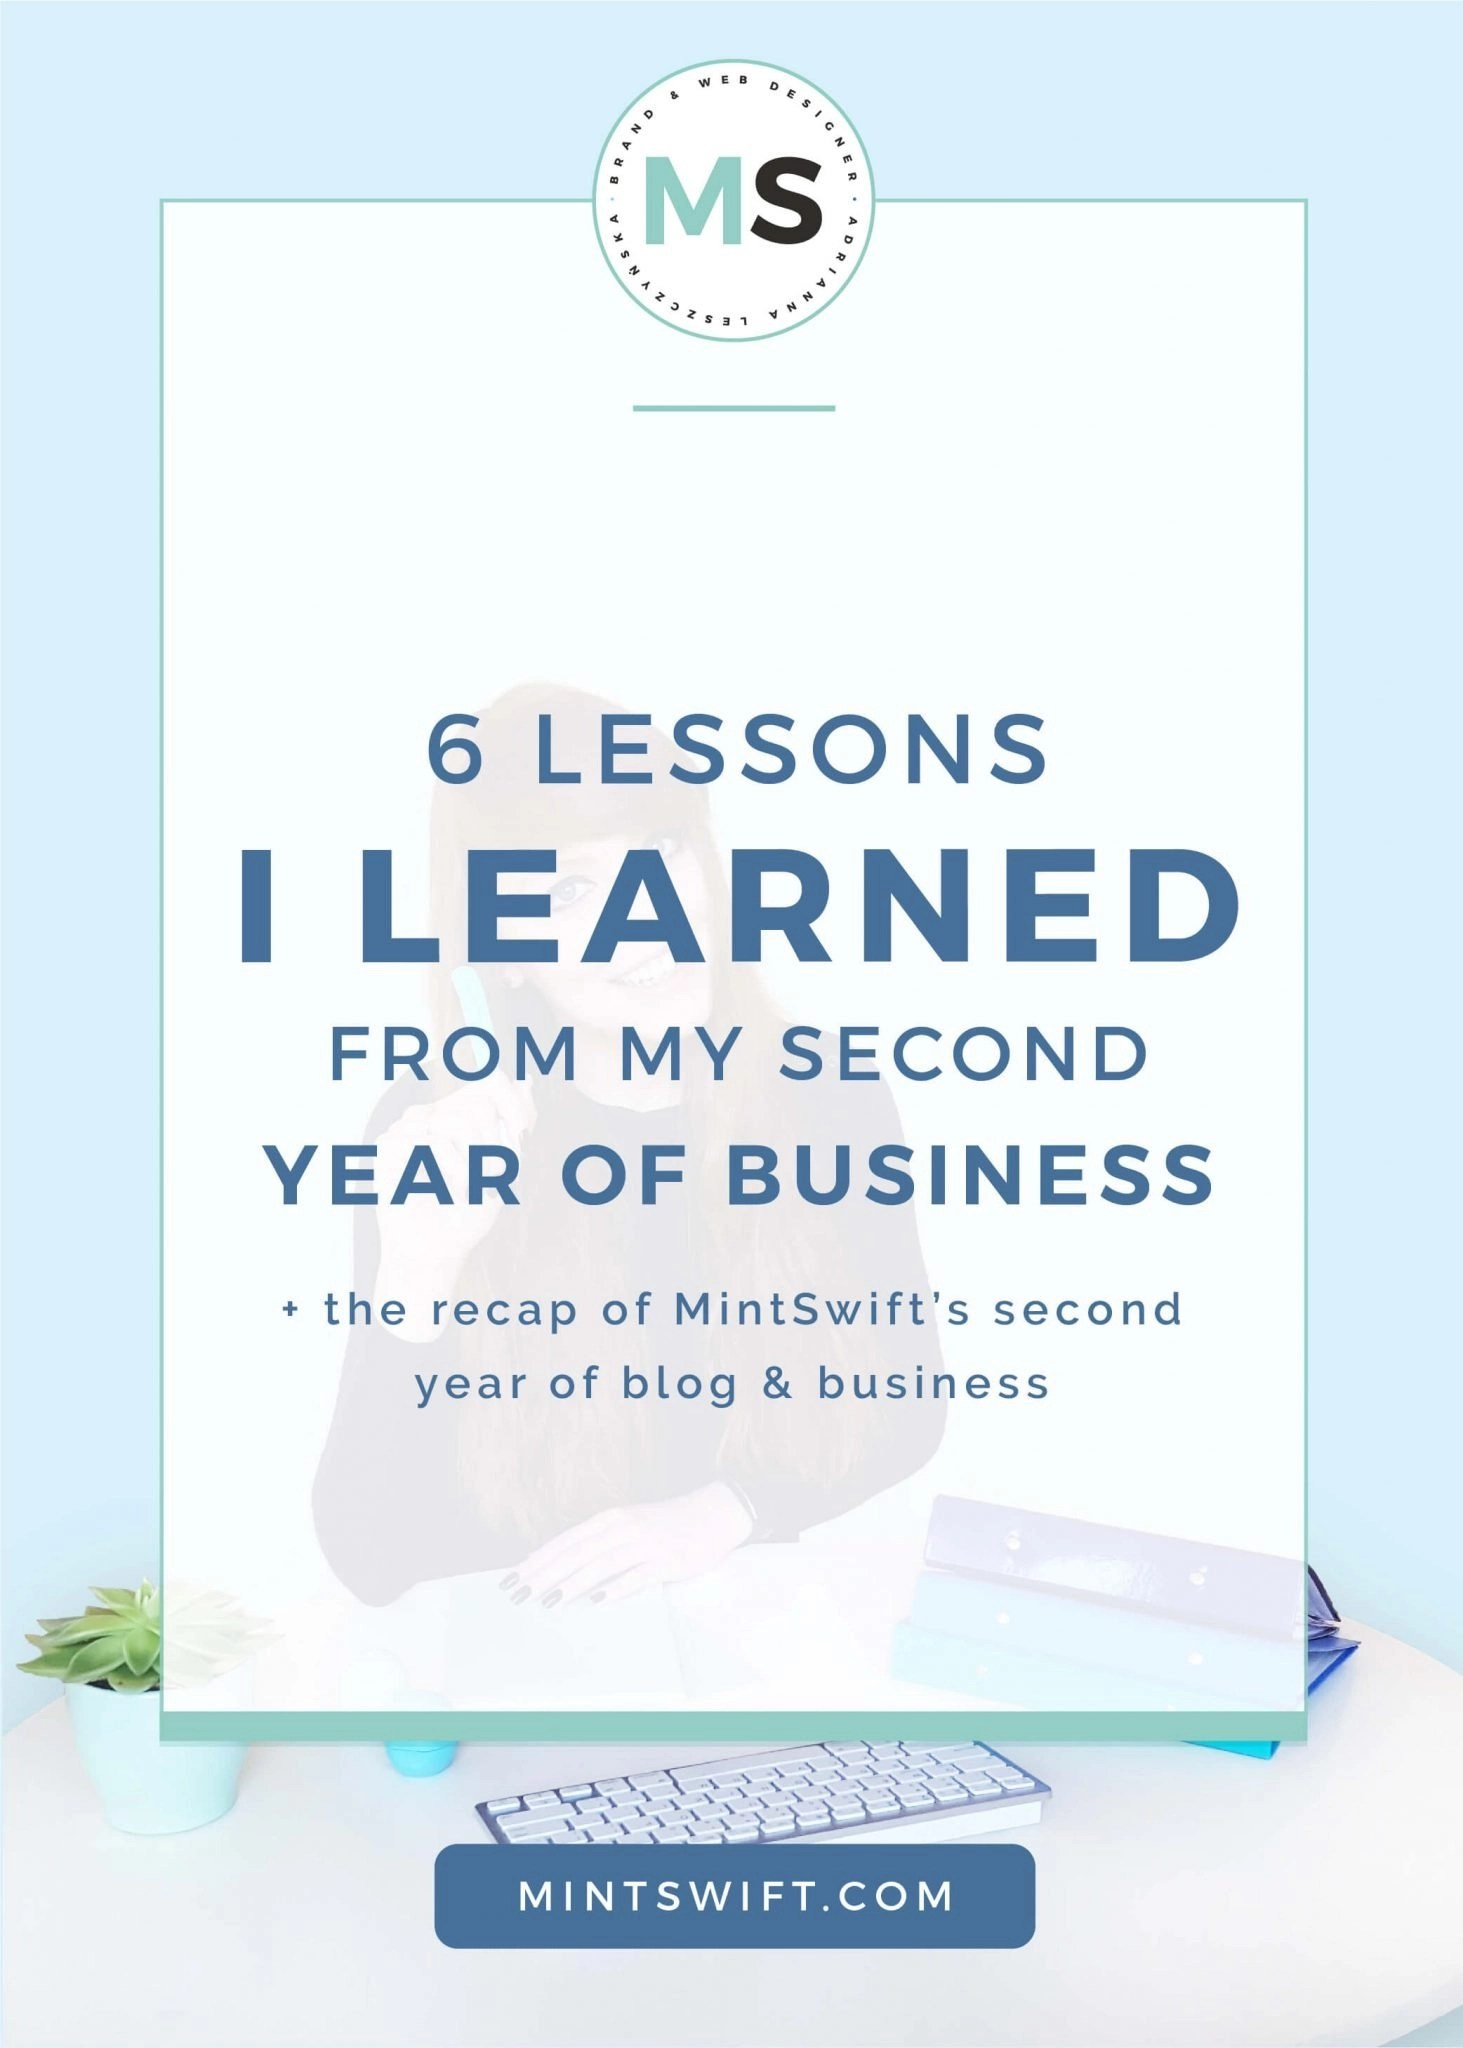 6 lessons I Learned from My Second Year of Business + The Recap of MintSwift's Second Year of Blog & Business by MintSwift